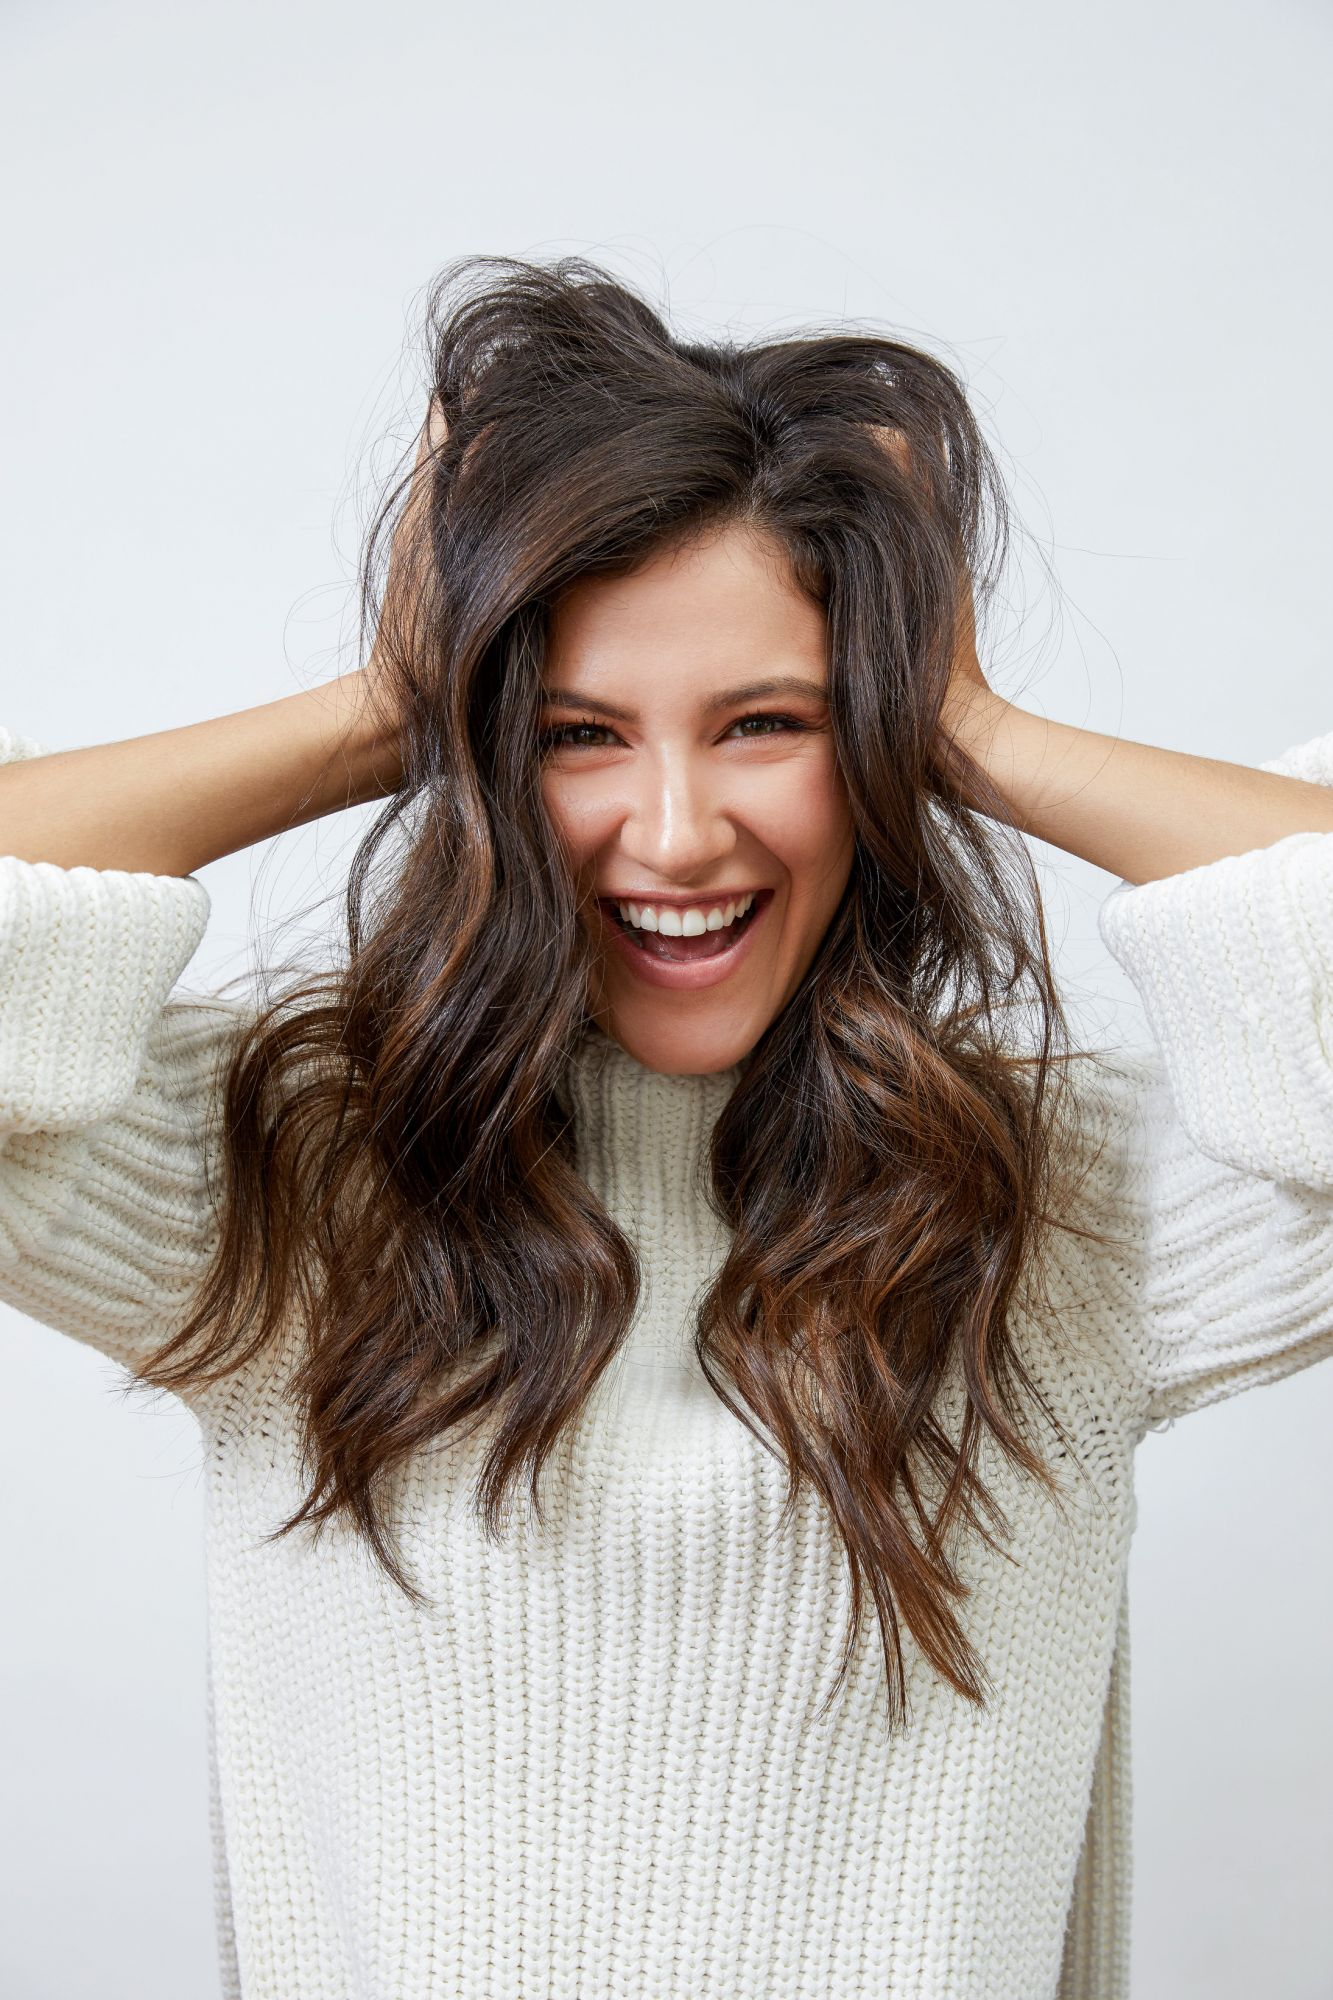 How To Keep Your Hair Healthy This Winter, According To The Experts